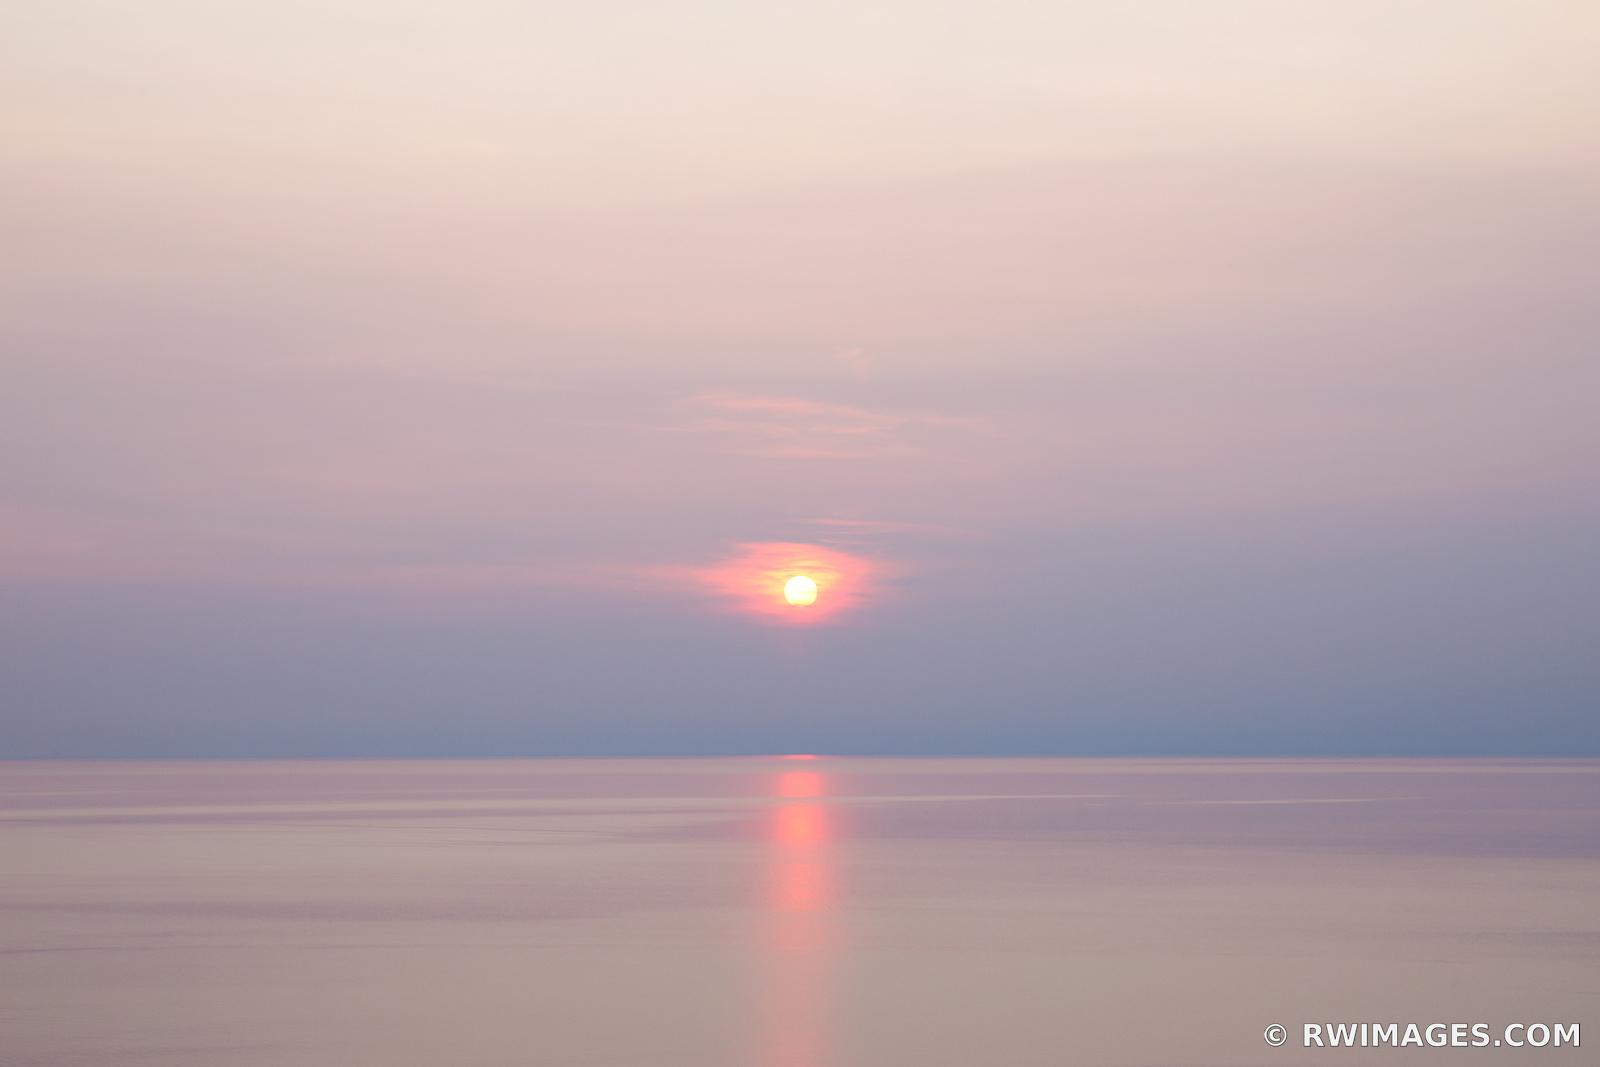 LAKE MICHIGAN SUNSET SLEEPING BEAR DUNES MICHIGAN COLOR